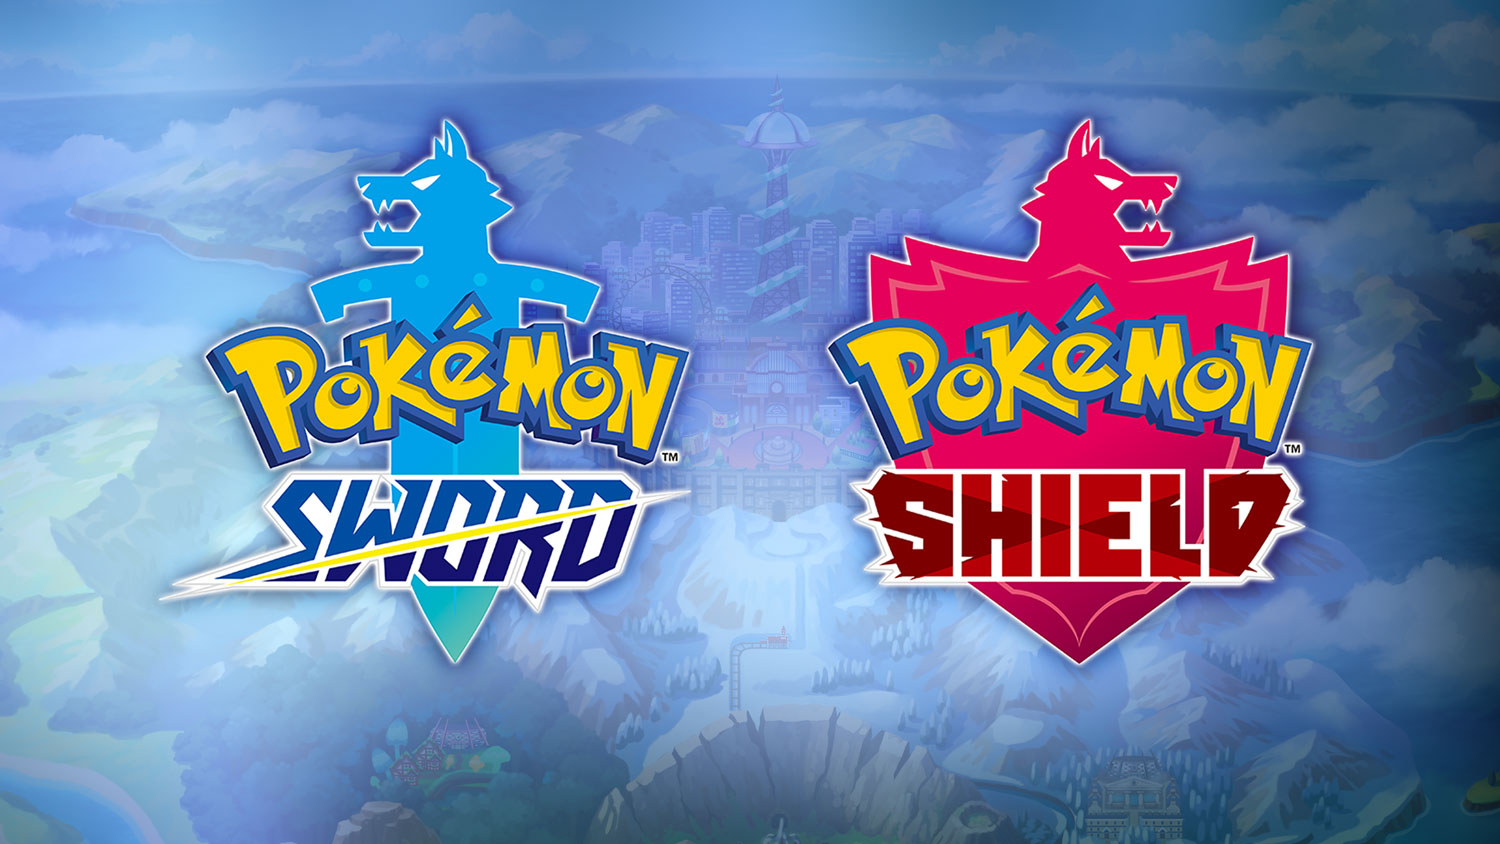 UK: Pokemon Sword/Shield biggest exclusive of the year, third biggest boxed launch of 2019, second biggest Pokemon launch ever